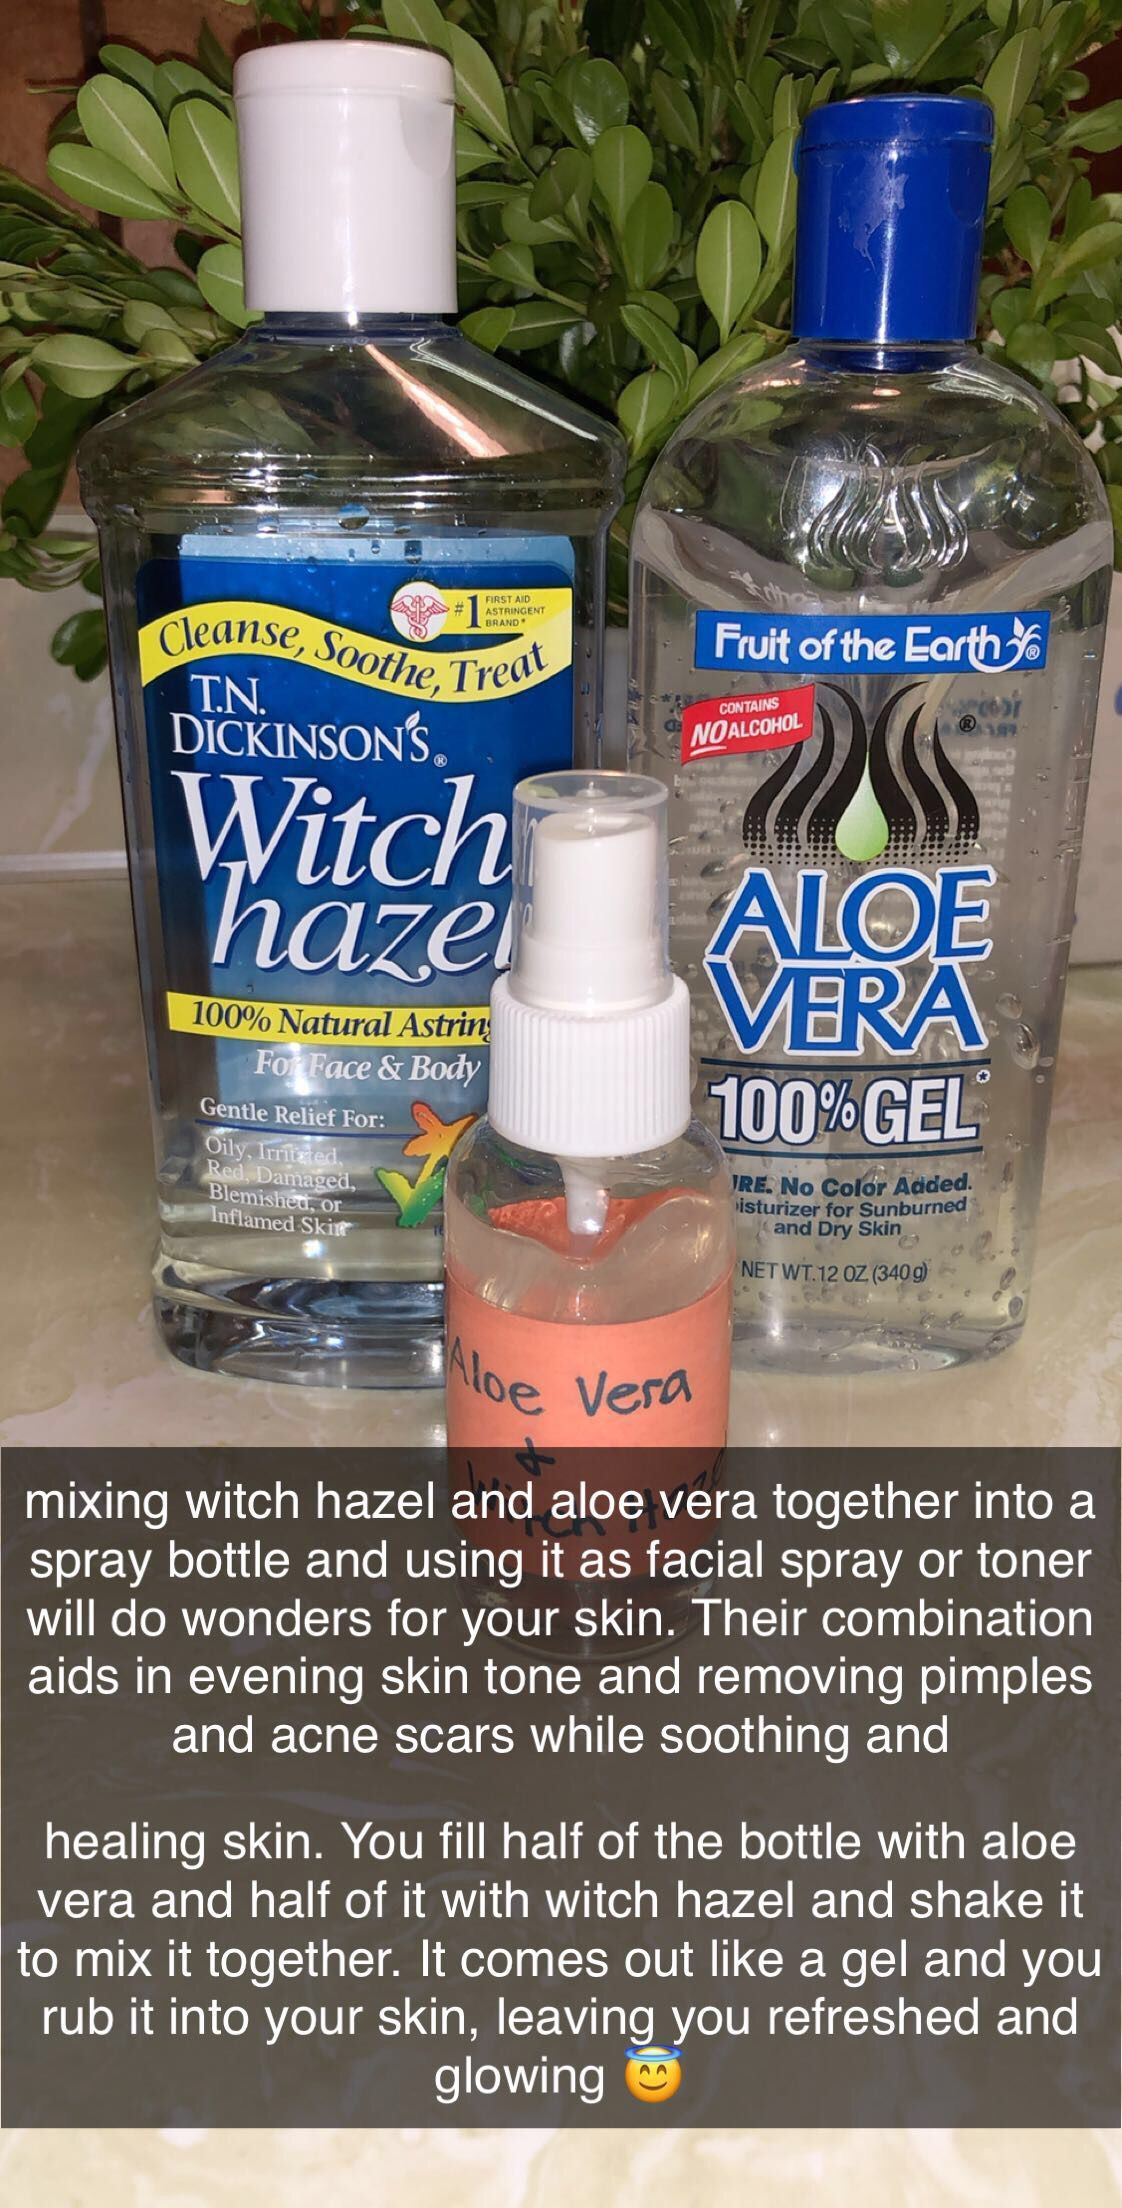 Beauty Tips For Teens Beauty Tips In Tamil Beauty Tips Tricks Tips For Face Tips For Hair Tips For In 2020 Aloe Vera Skin Care Healthy Skin Care Facial Skin Care